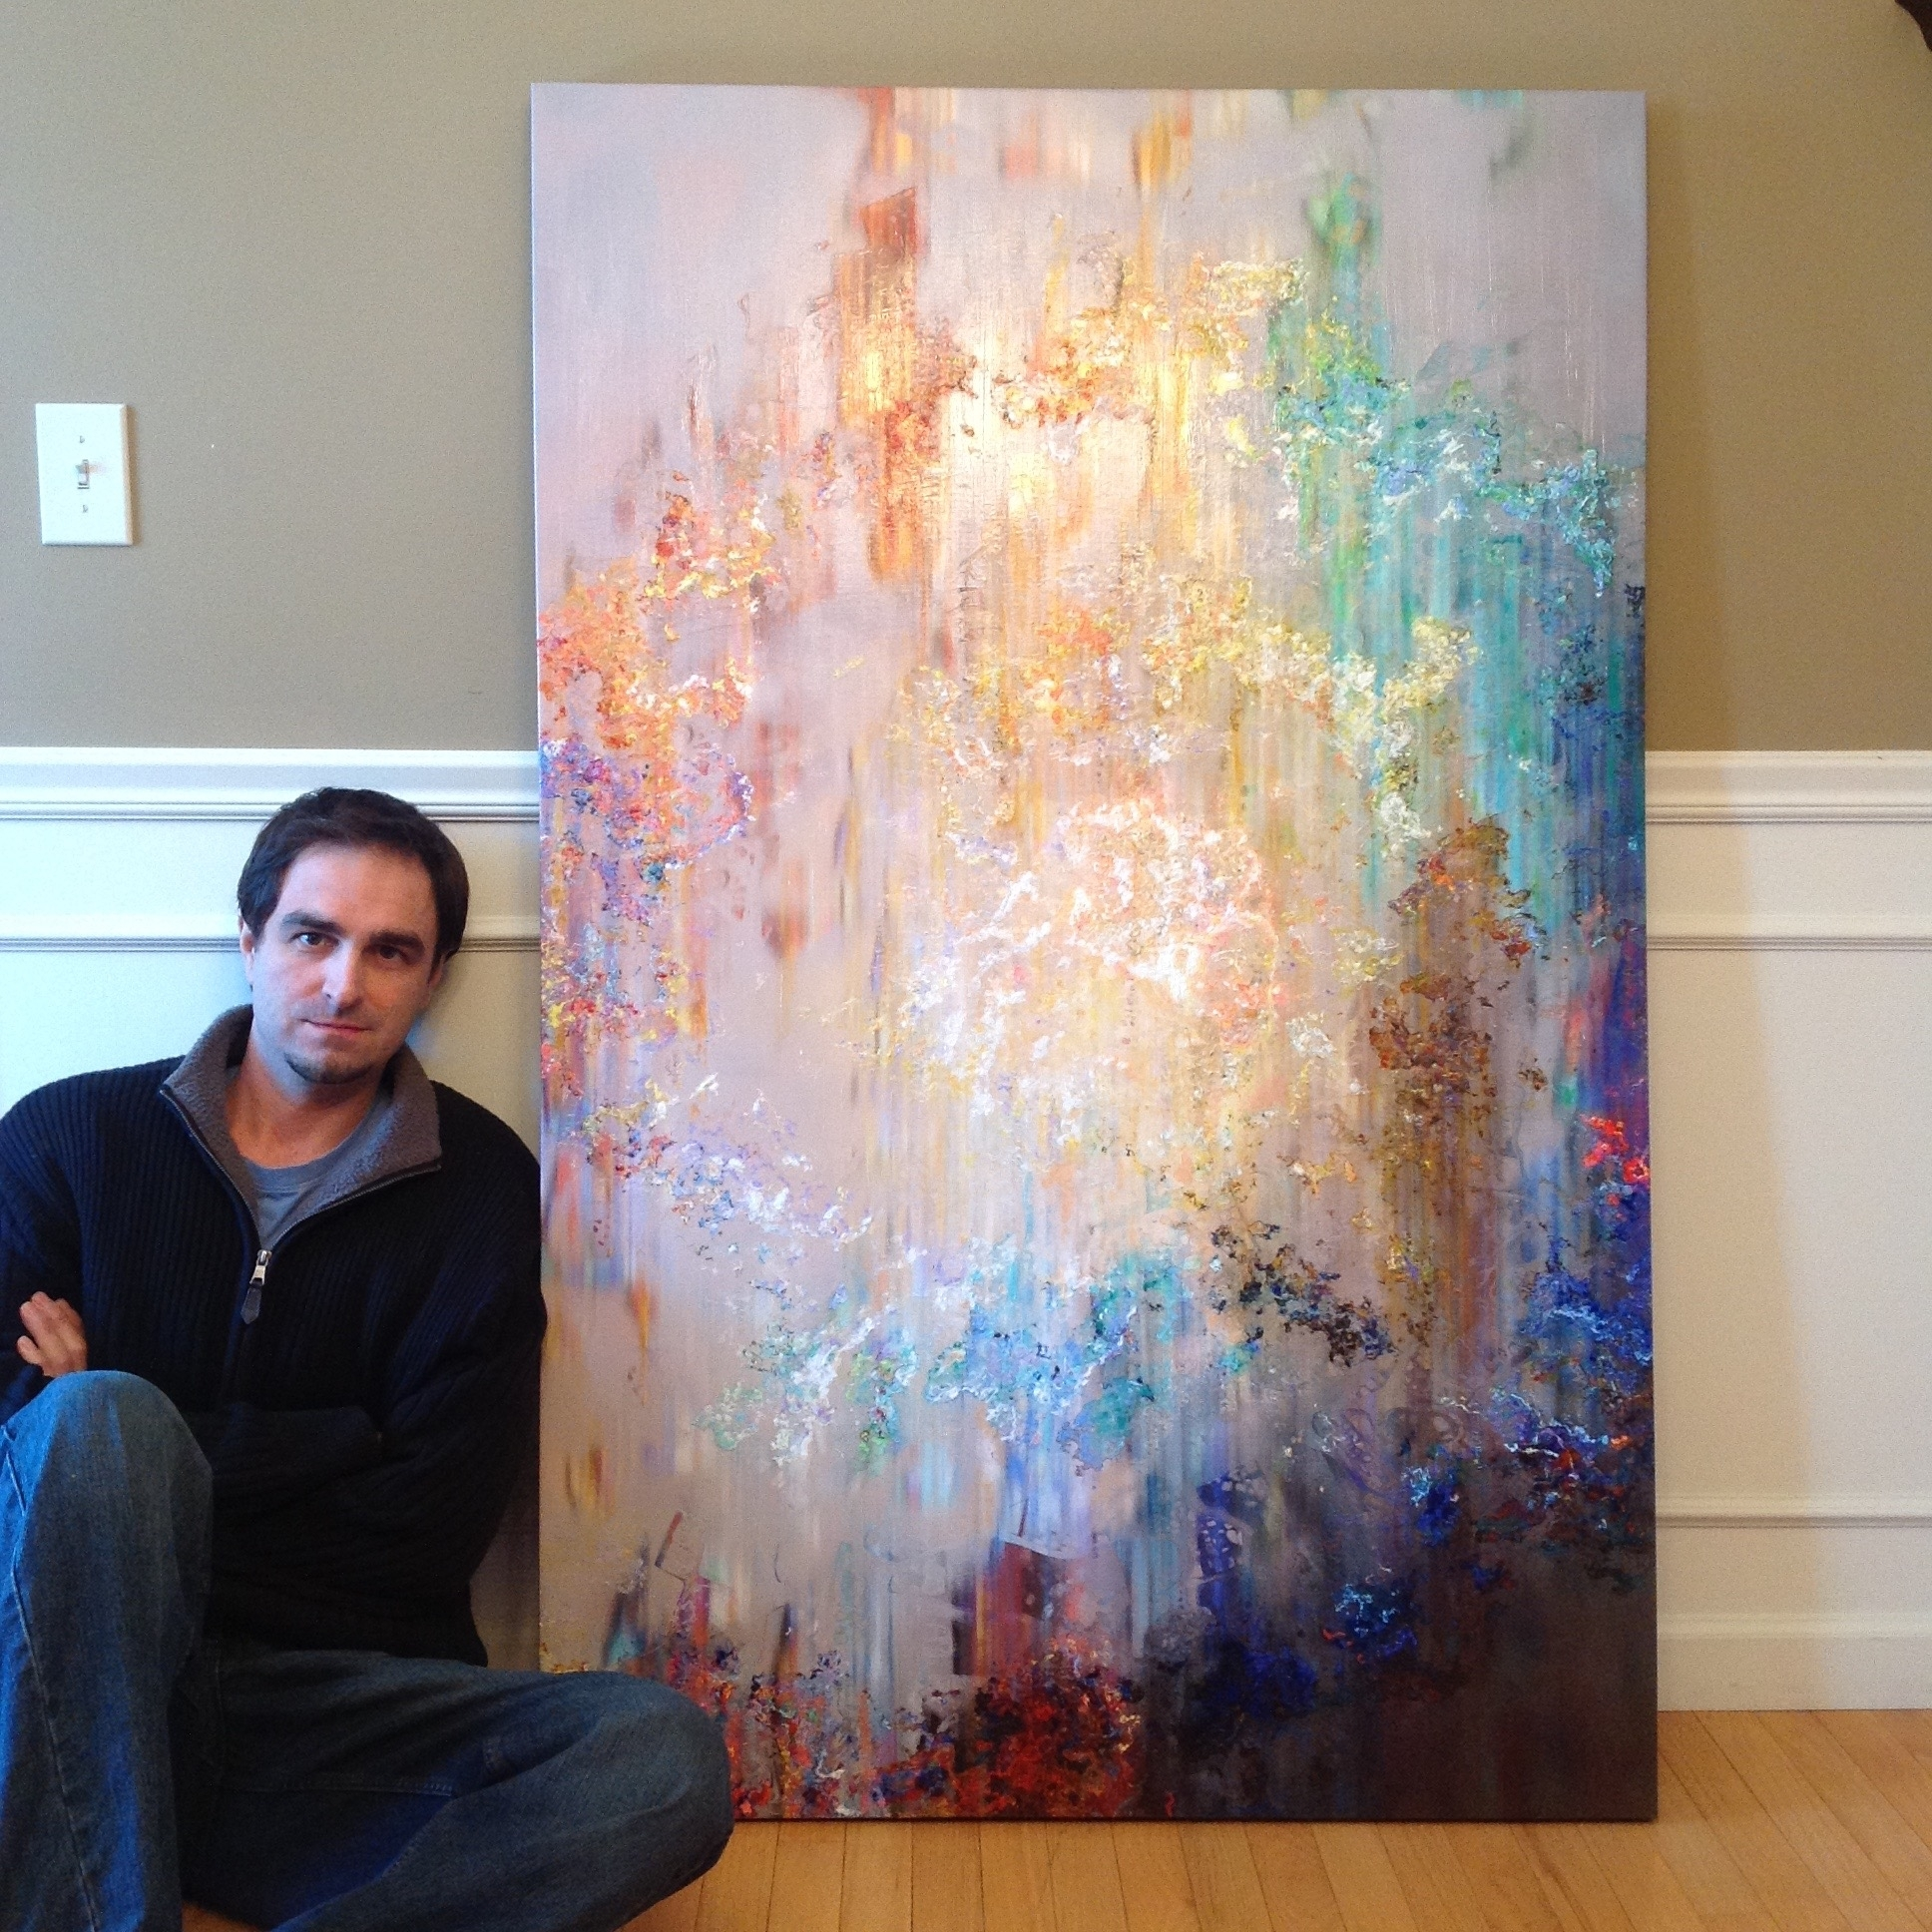 Preferred Cianelli Studios Blog – Abstract Art Throughout Giant Abstract Wall Art (View 7 of 15)